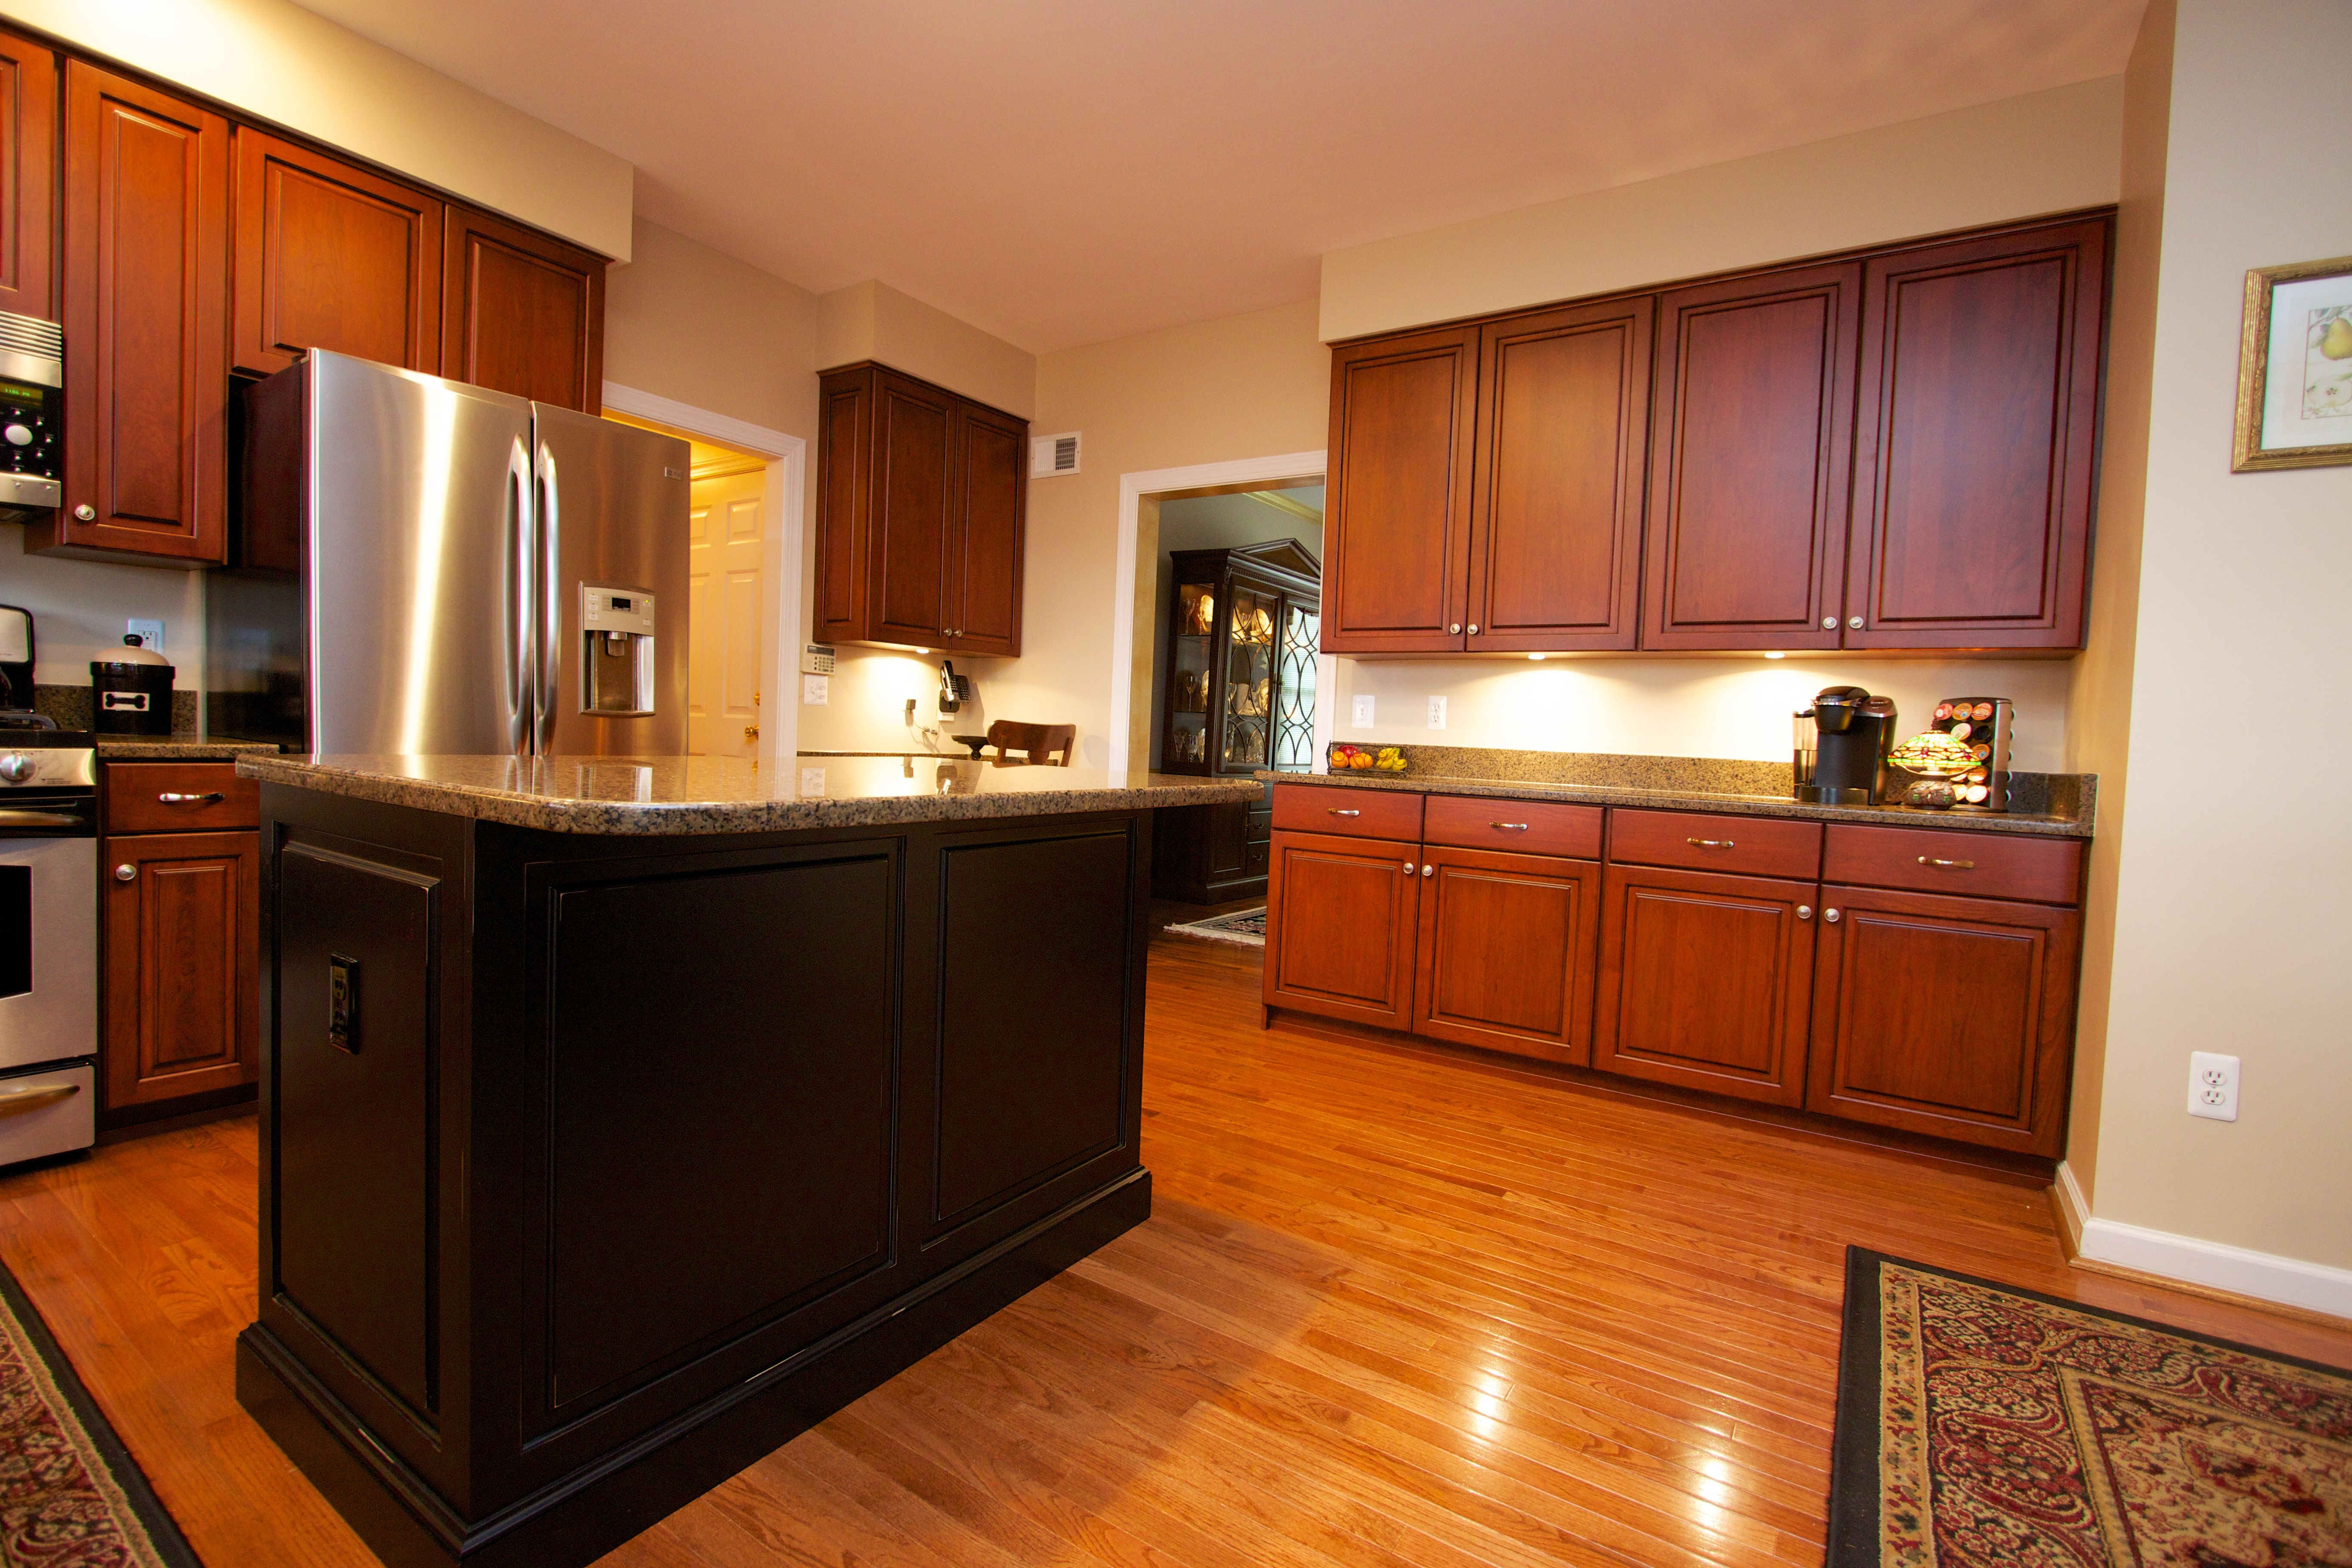 Kitchen Cabinet Refacing Gallery Custom Kitchen Cabinets Cherry Cabinets Kitchen Refacing Kitchen Cabinets